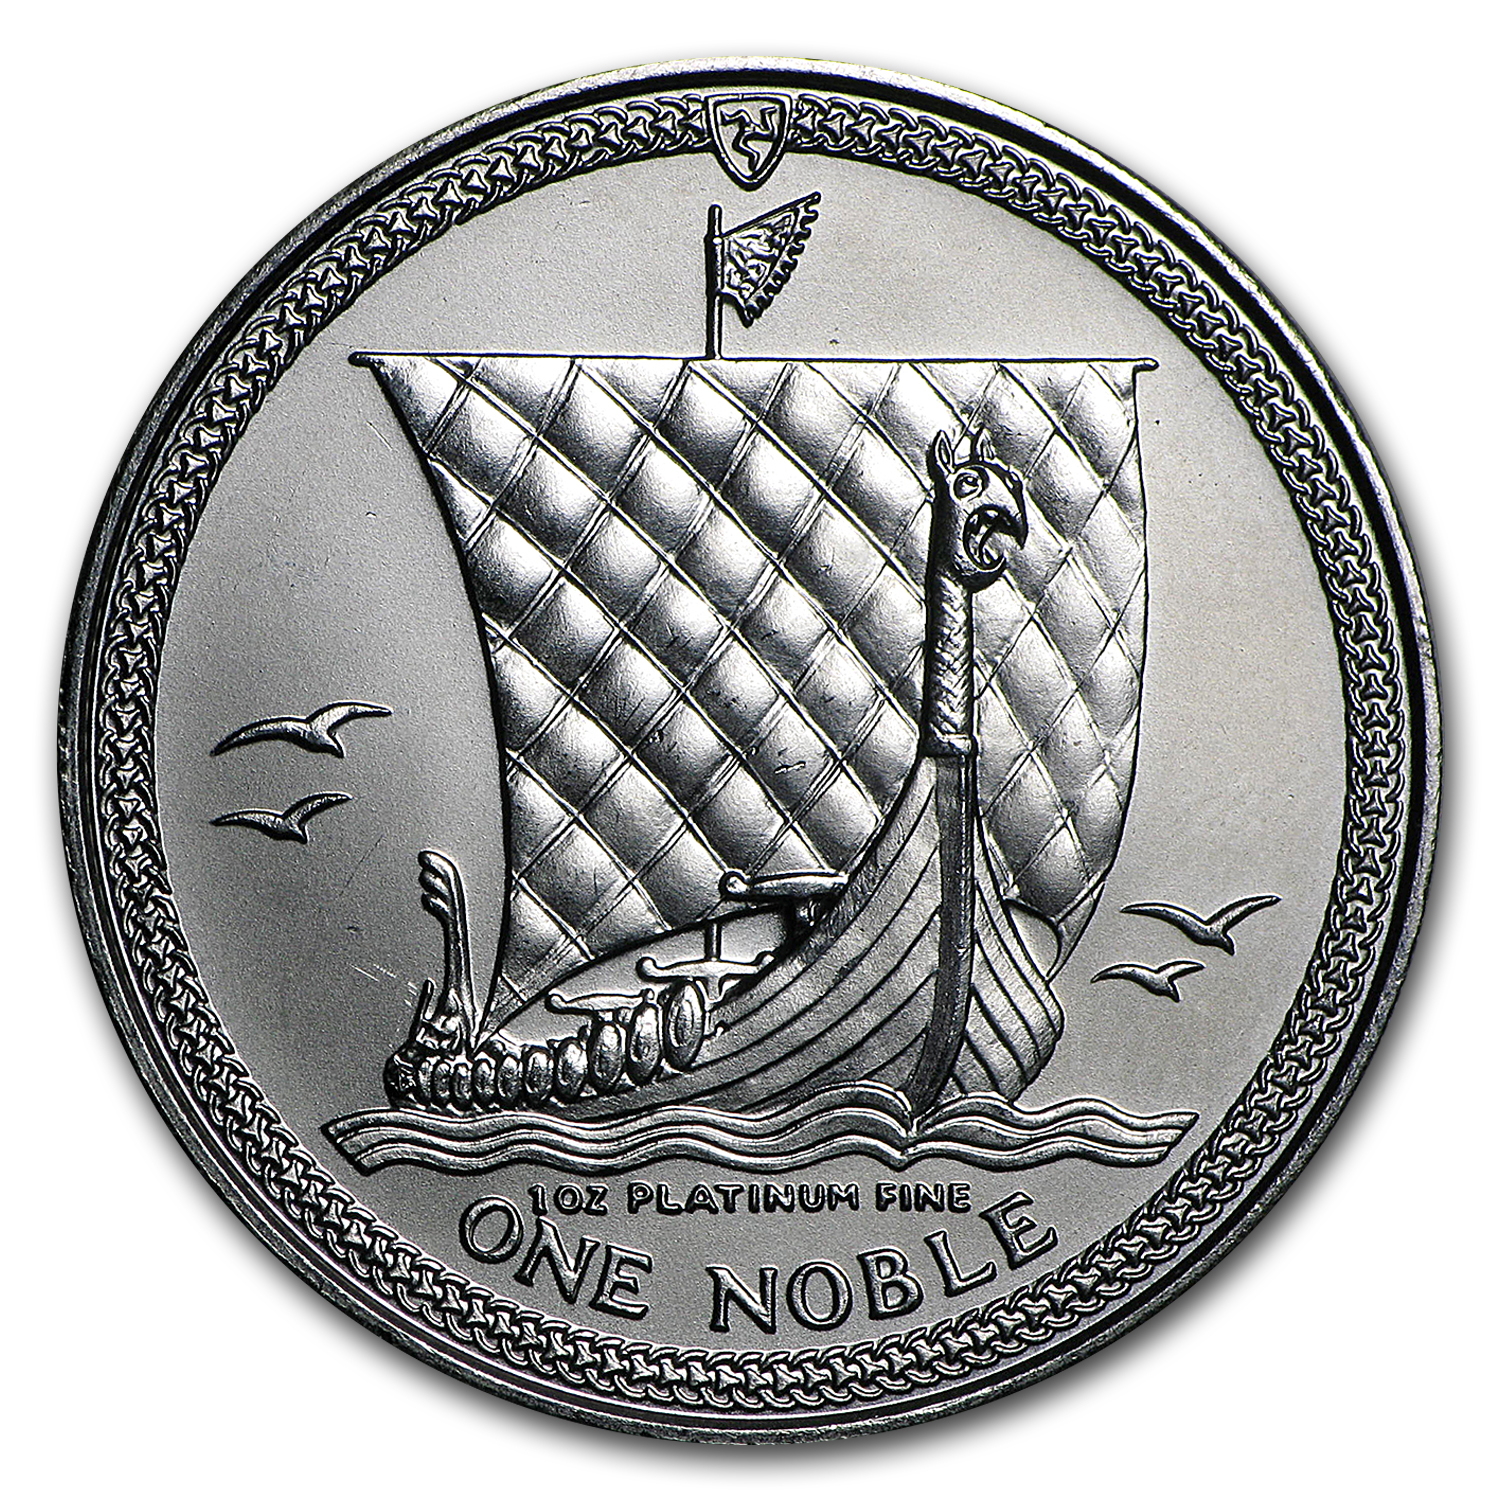 1984 Isle of Man 1 oz Platinum Noble BU or Proof